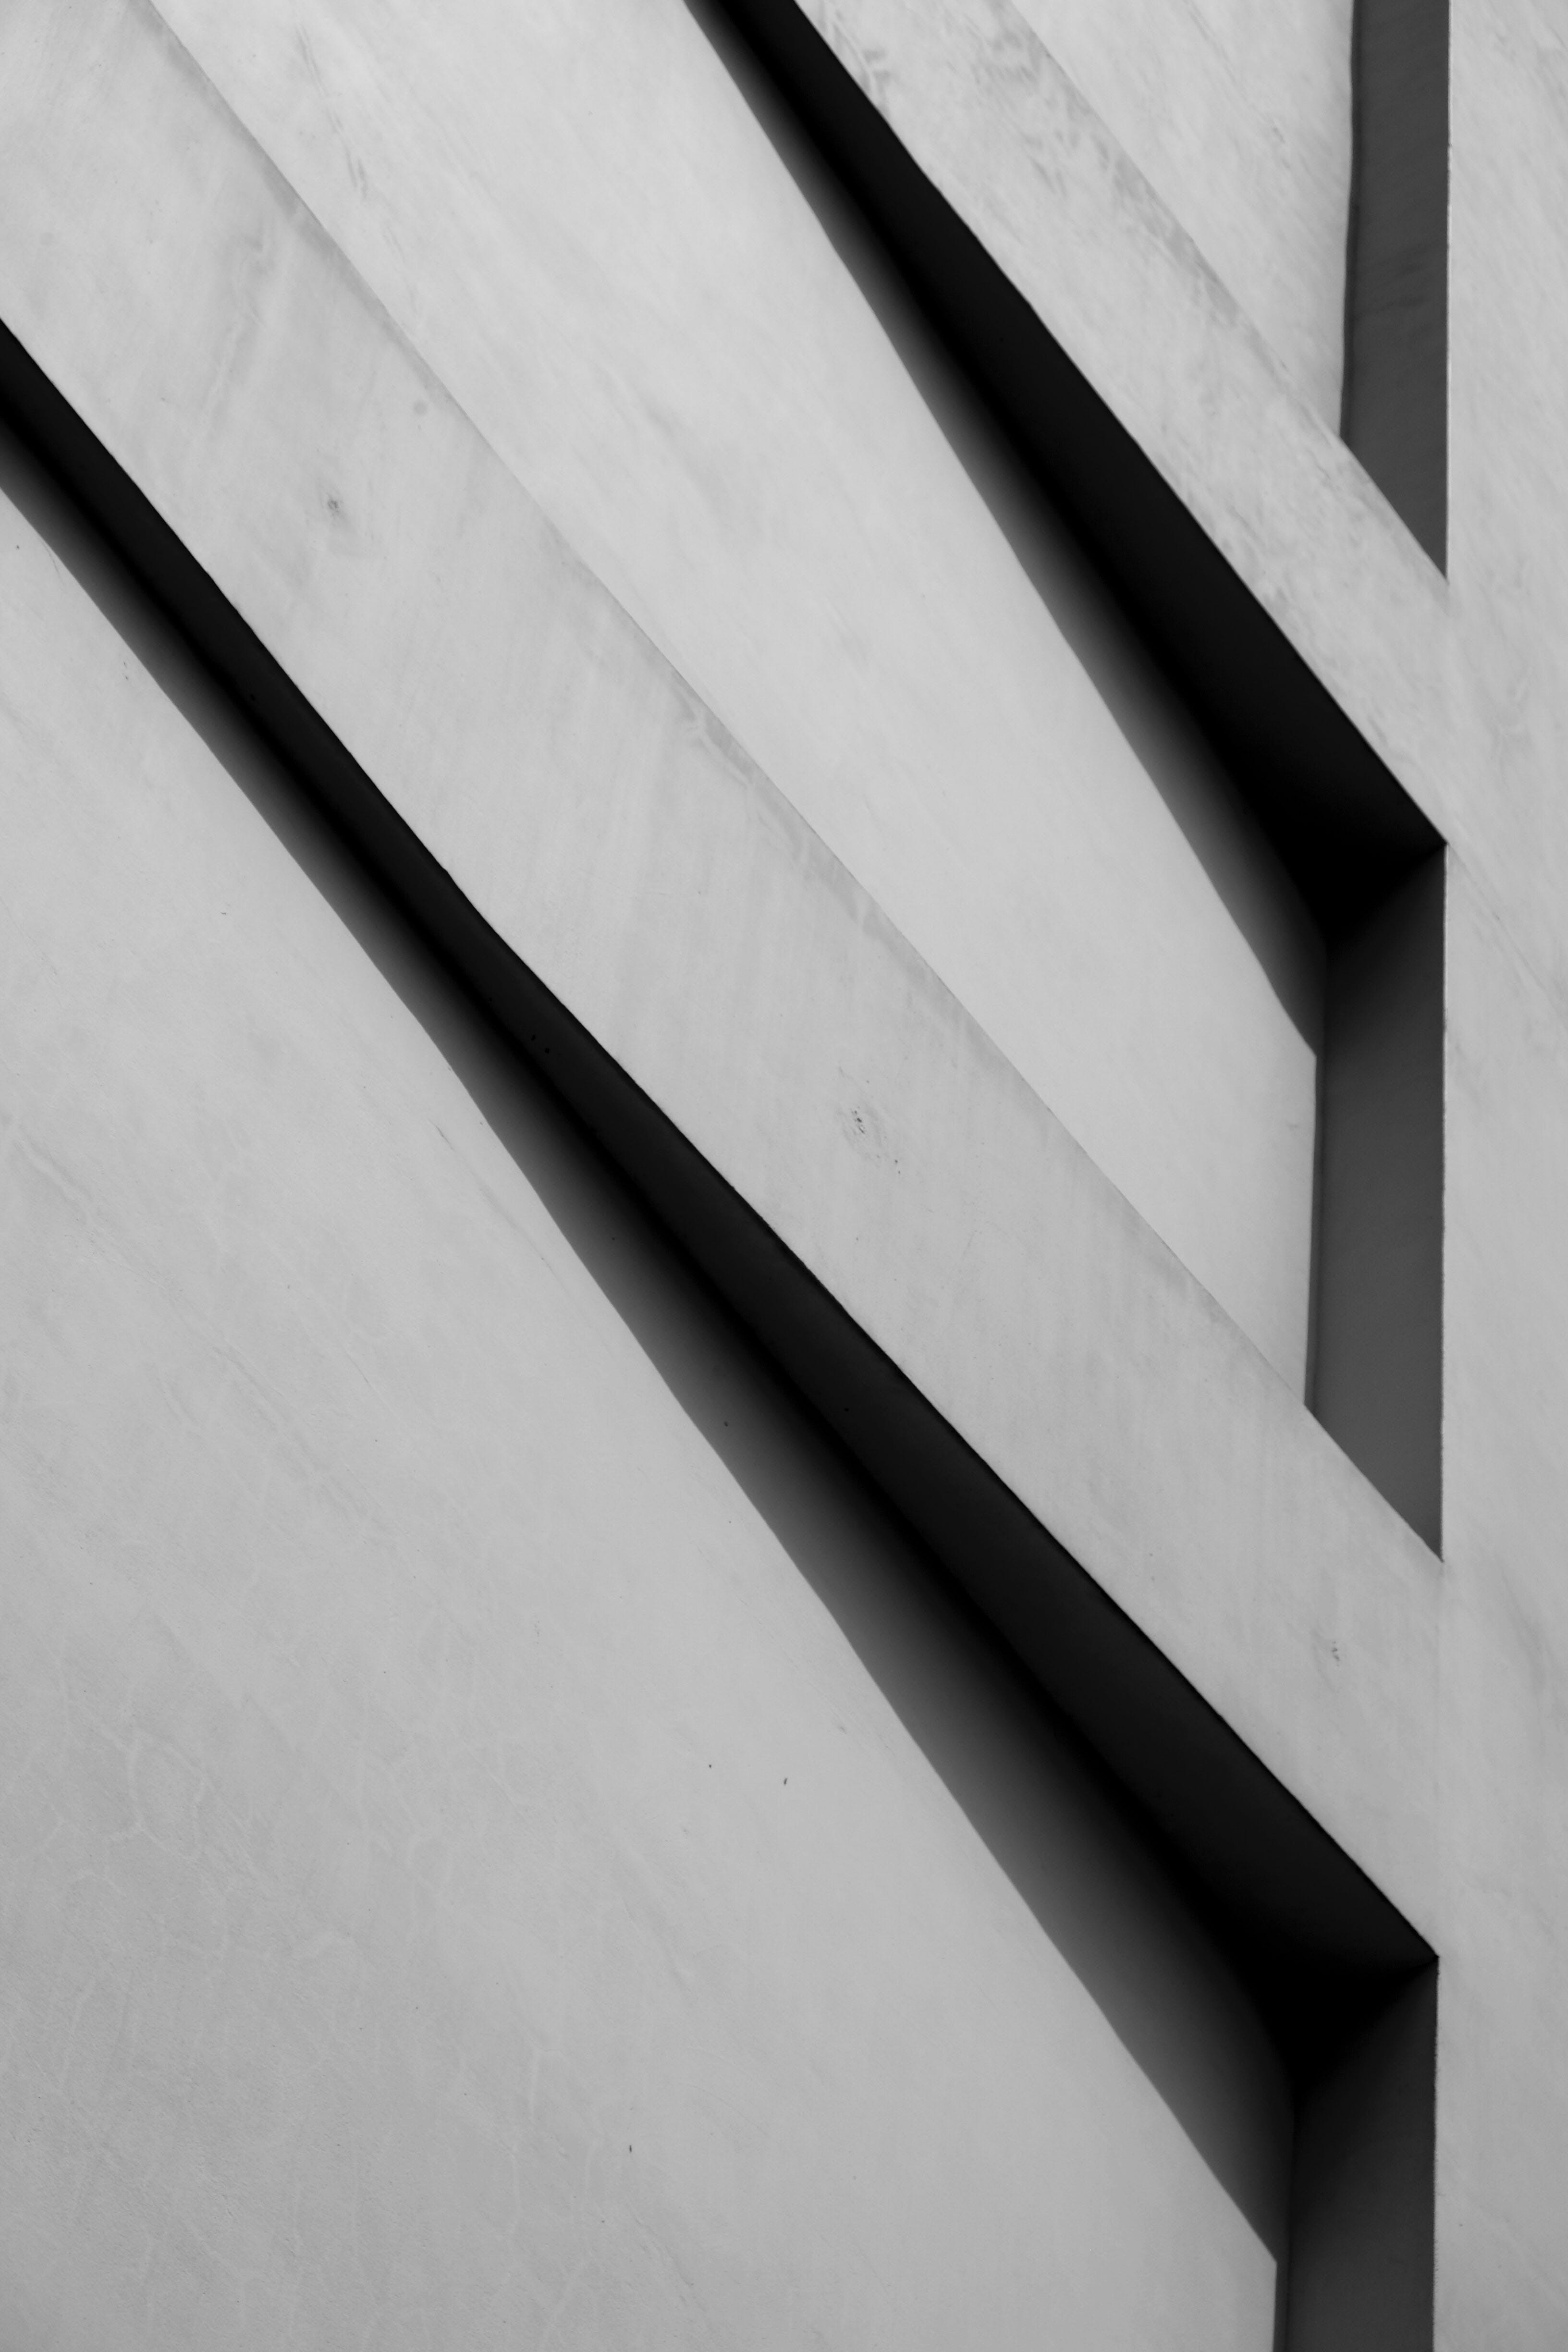 Low Angle Monochrome Shot of a Building Exterior